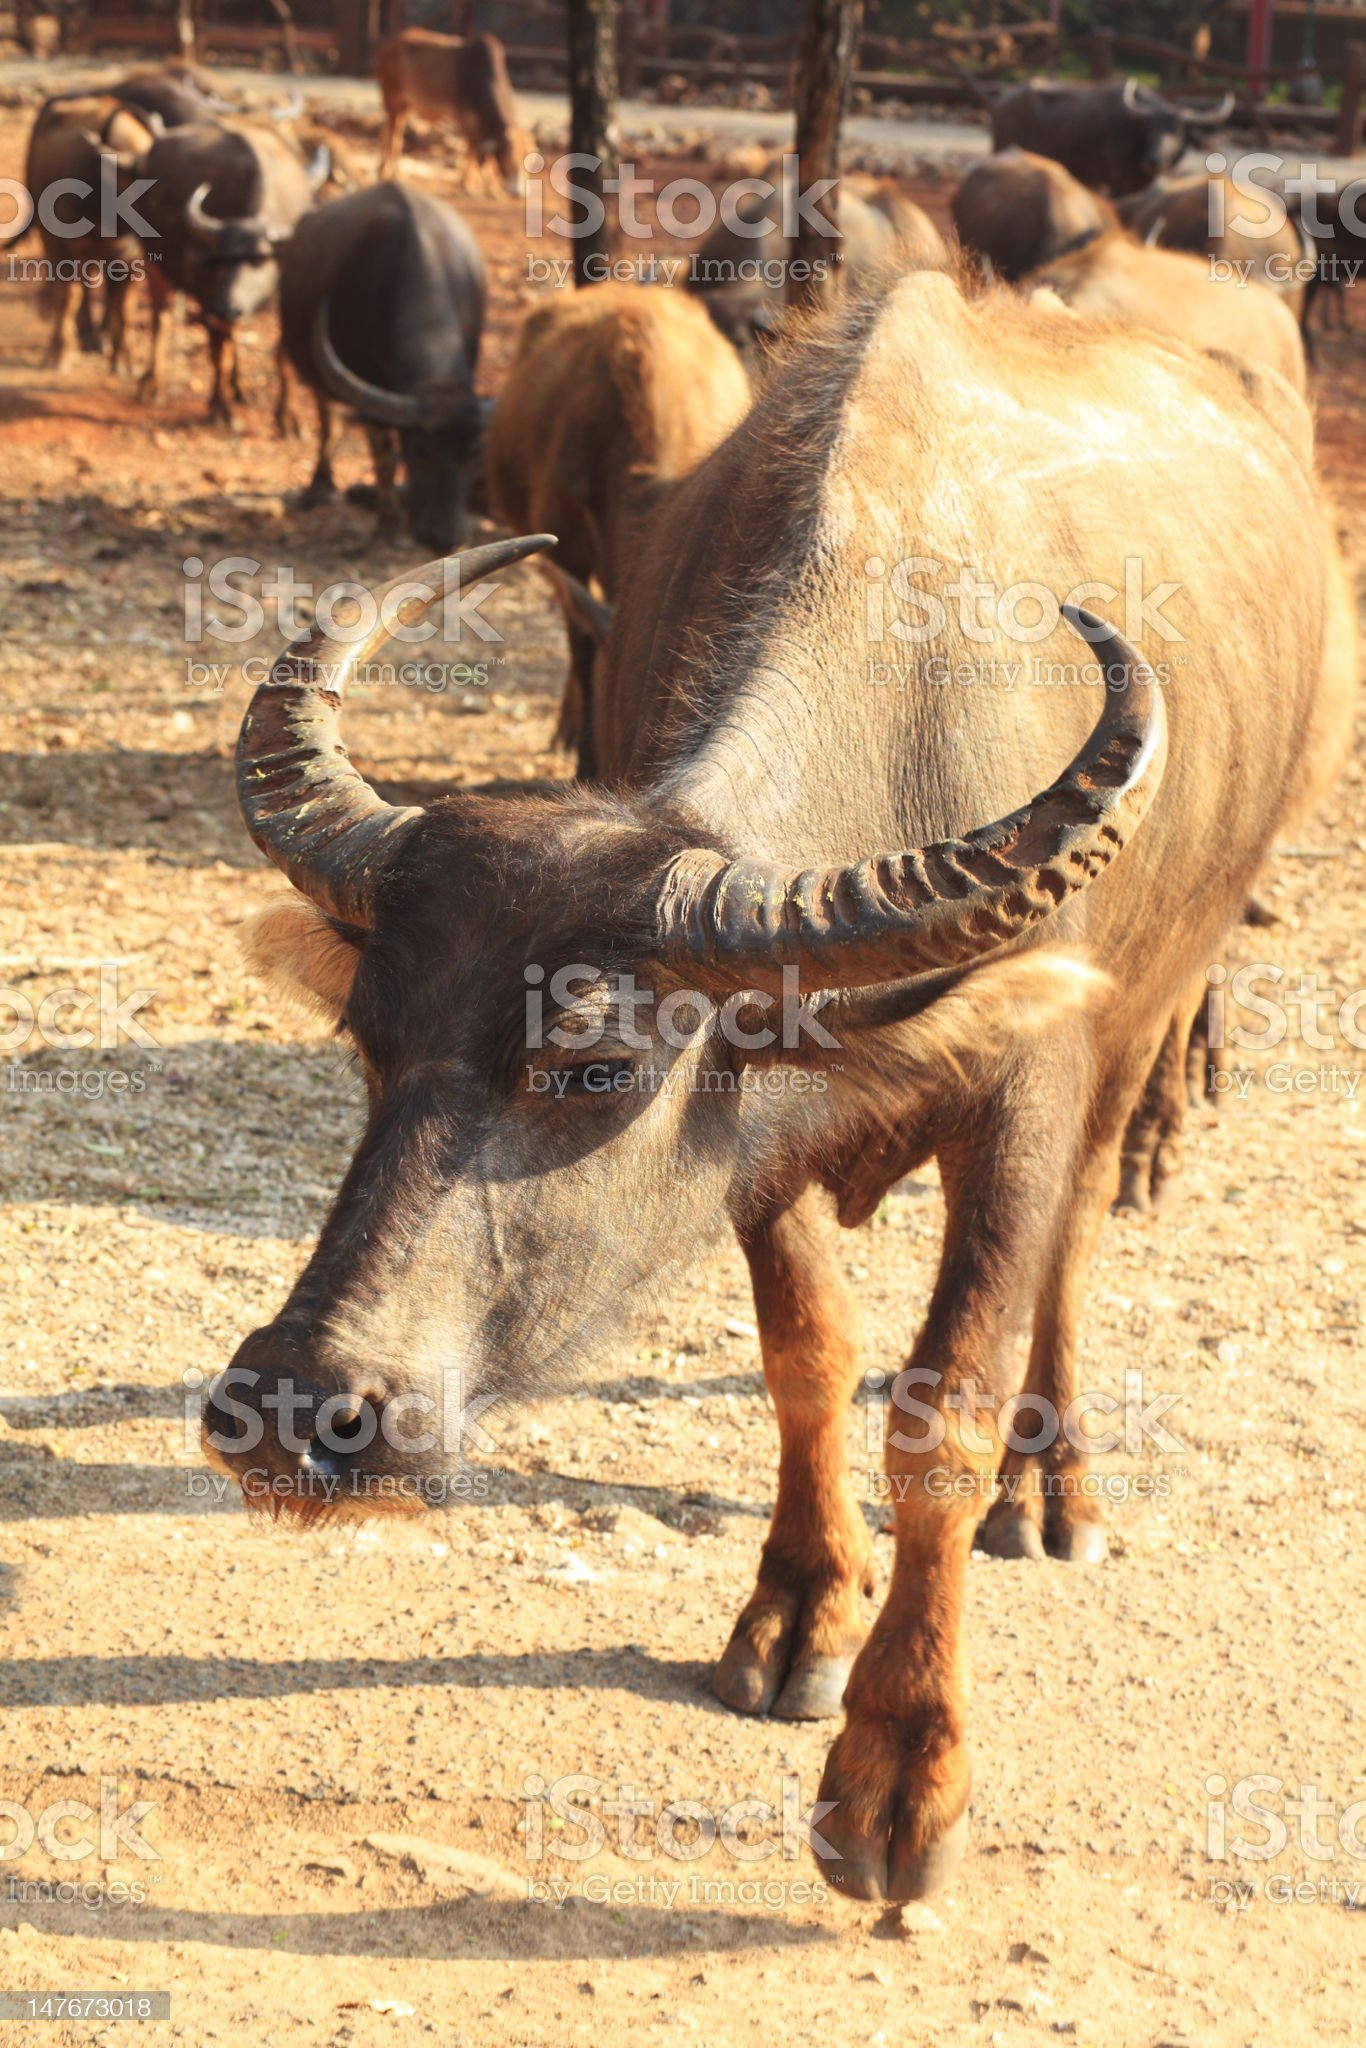 Buffalo at Tiger Temple, Kanchanaburi, Thailand royalty-free stock photo